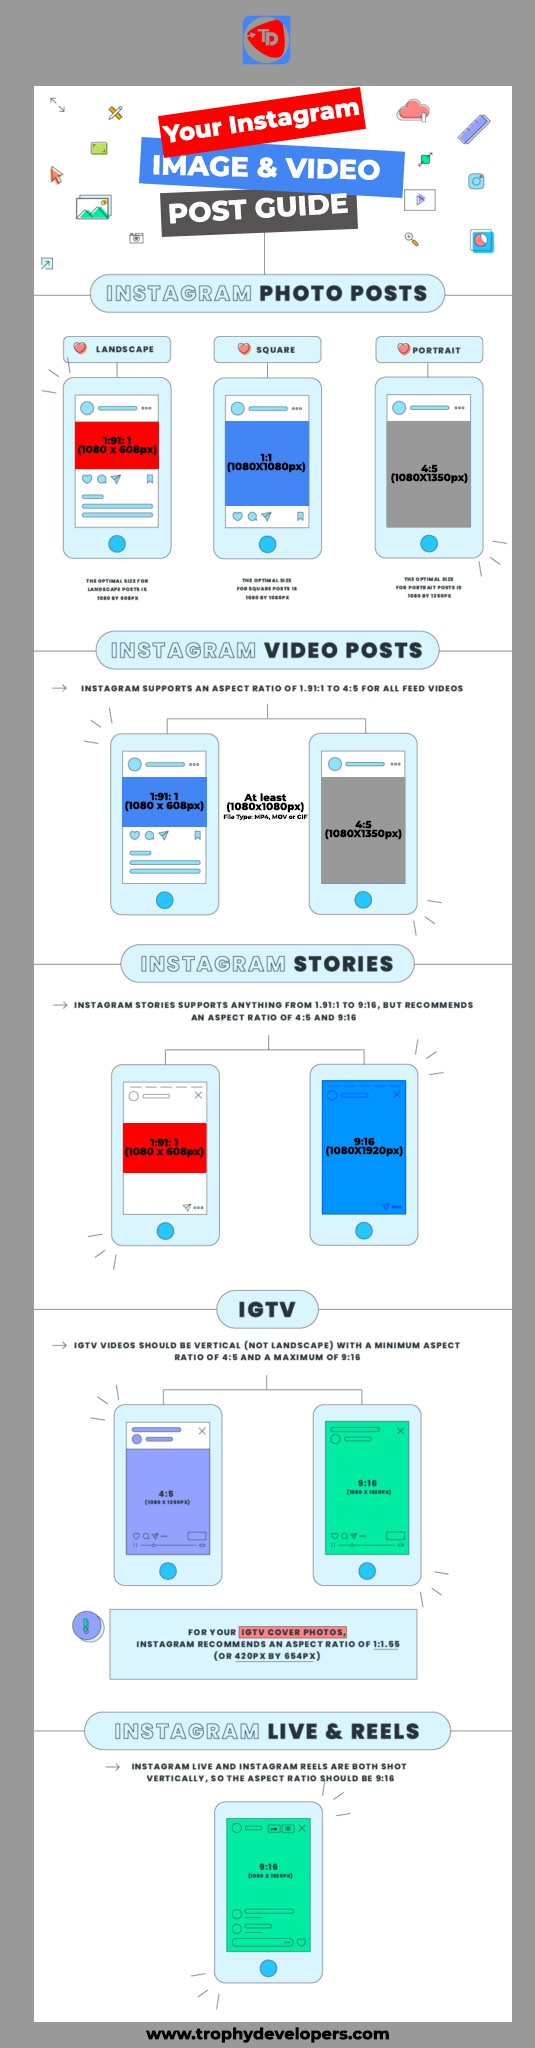 Instagram Image Size & Dimensions for 2021 (+ Free Infographic download)